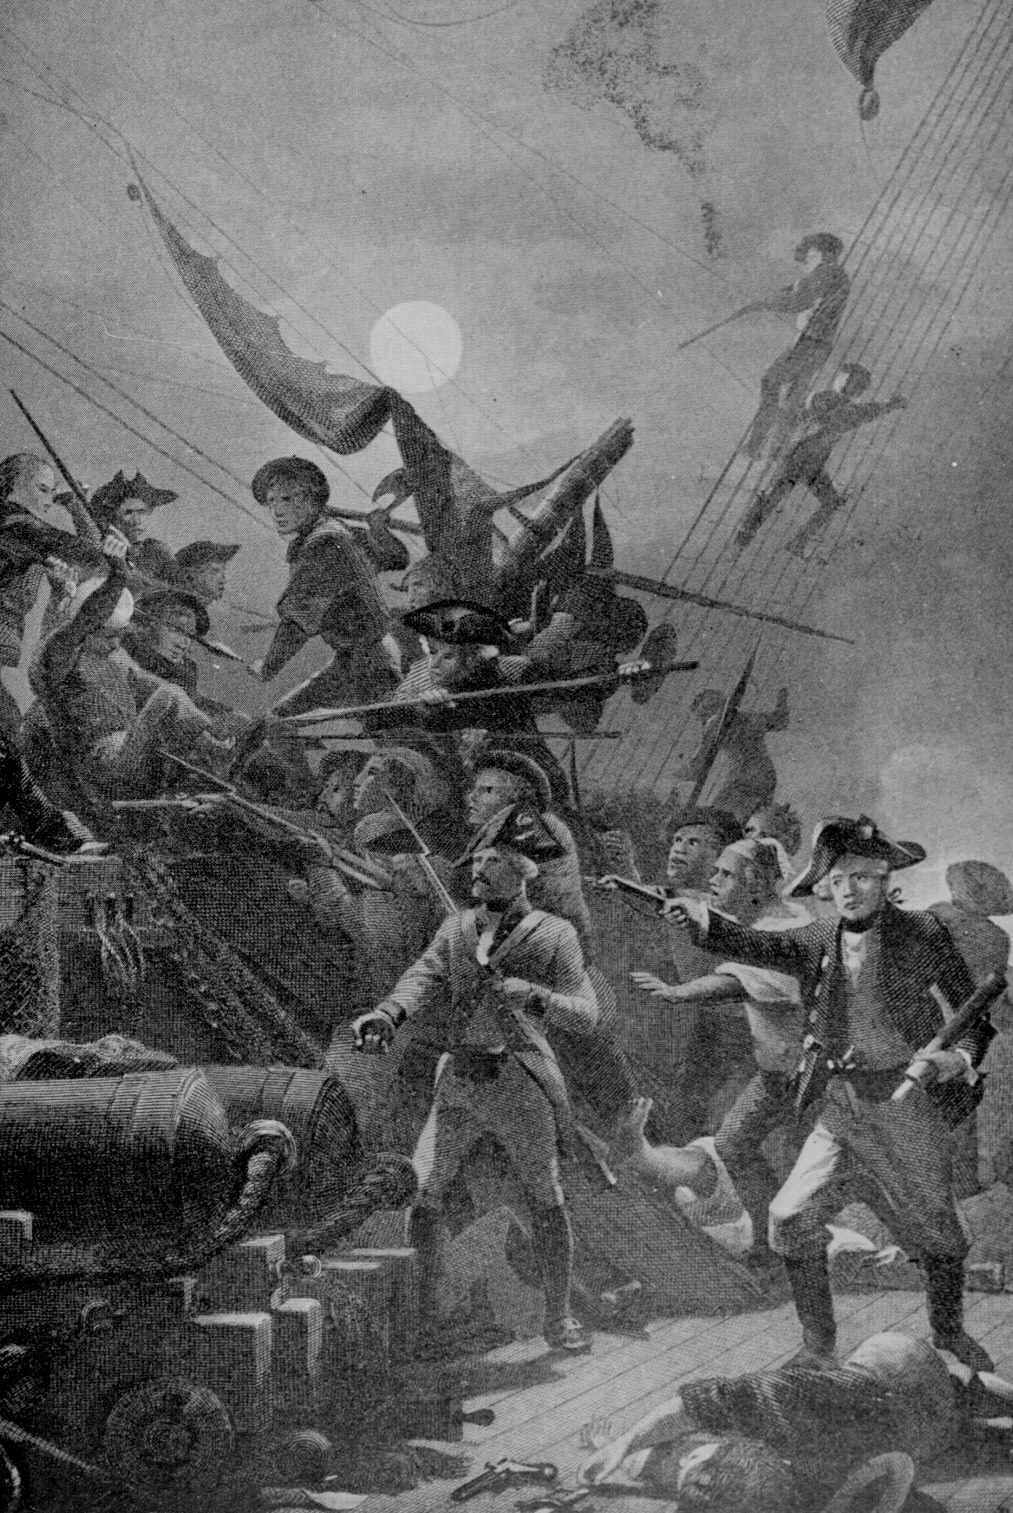 Pictures of the Revolutionary War.